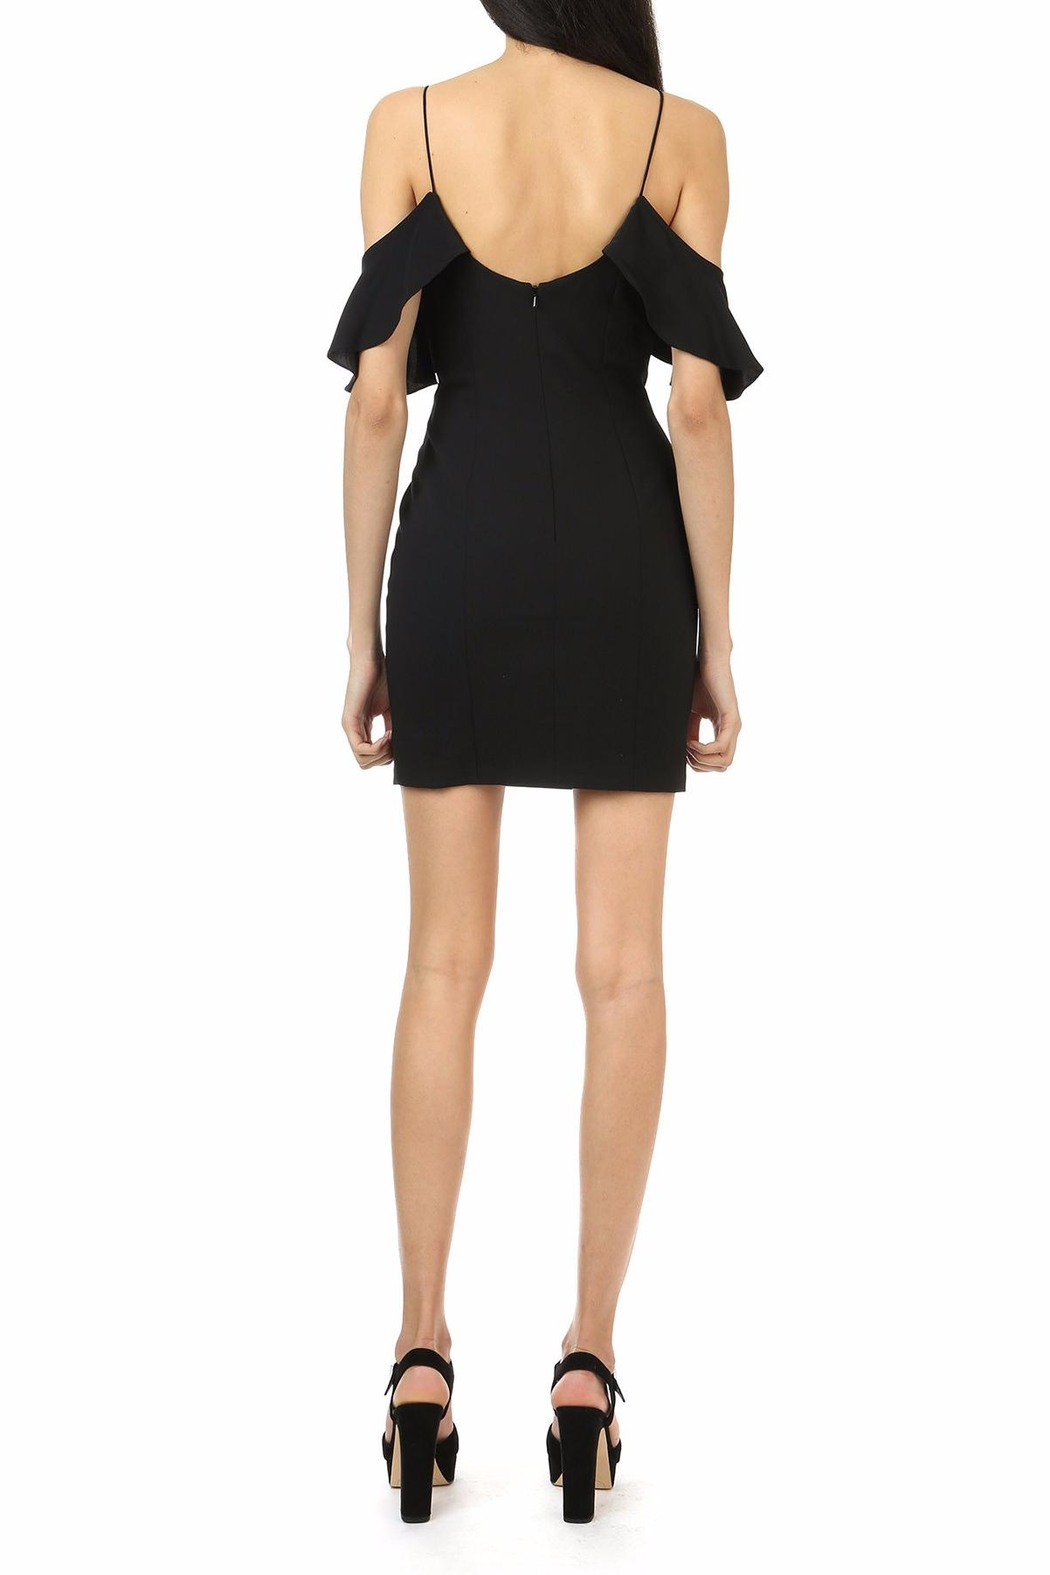 Jay Godfrey Black Cold-Shoulder Mini - Side Cropped Image